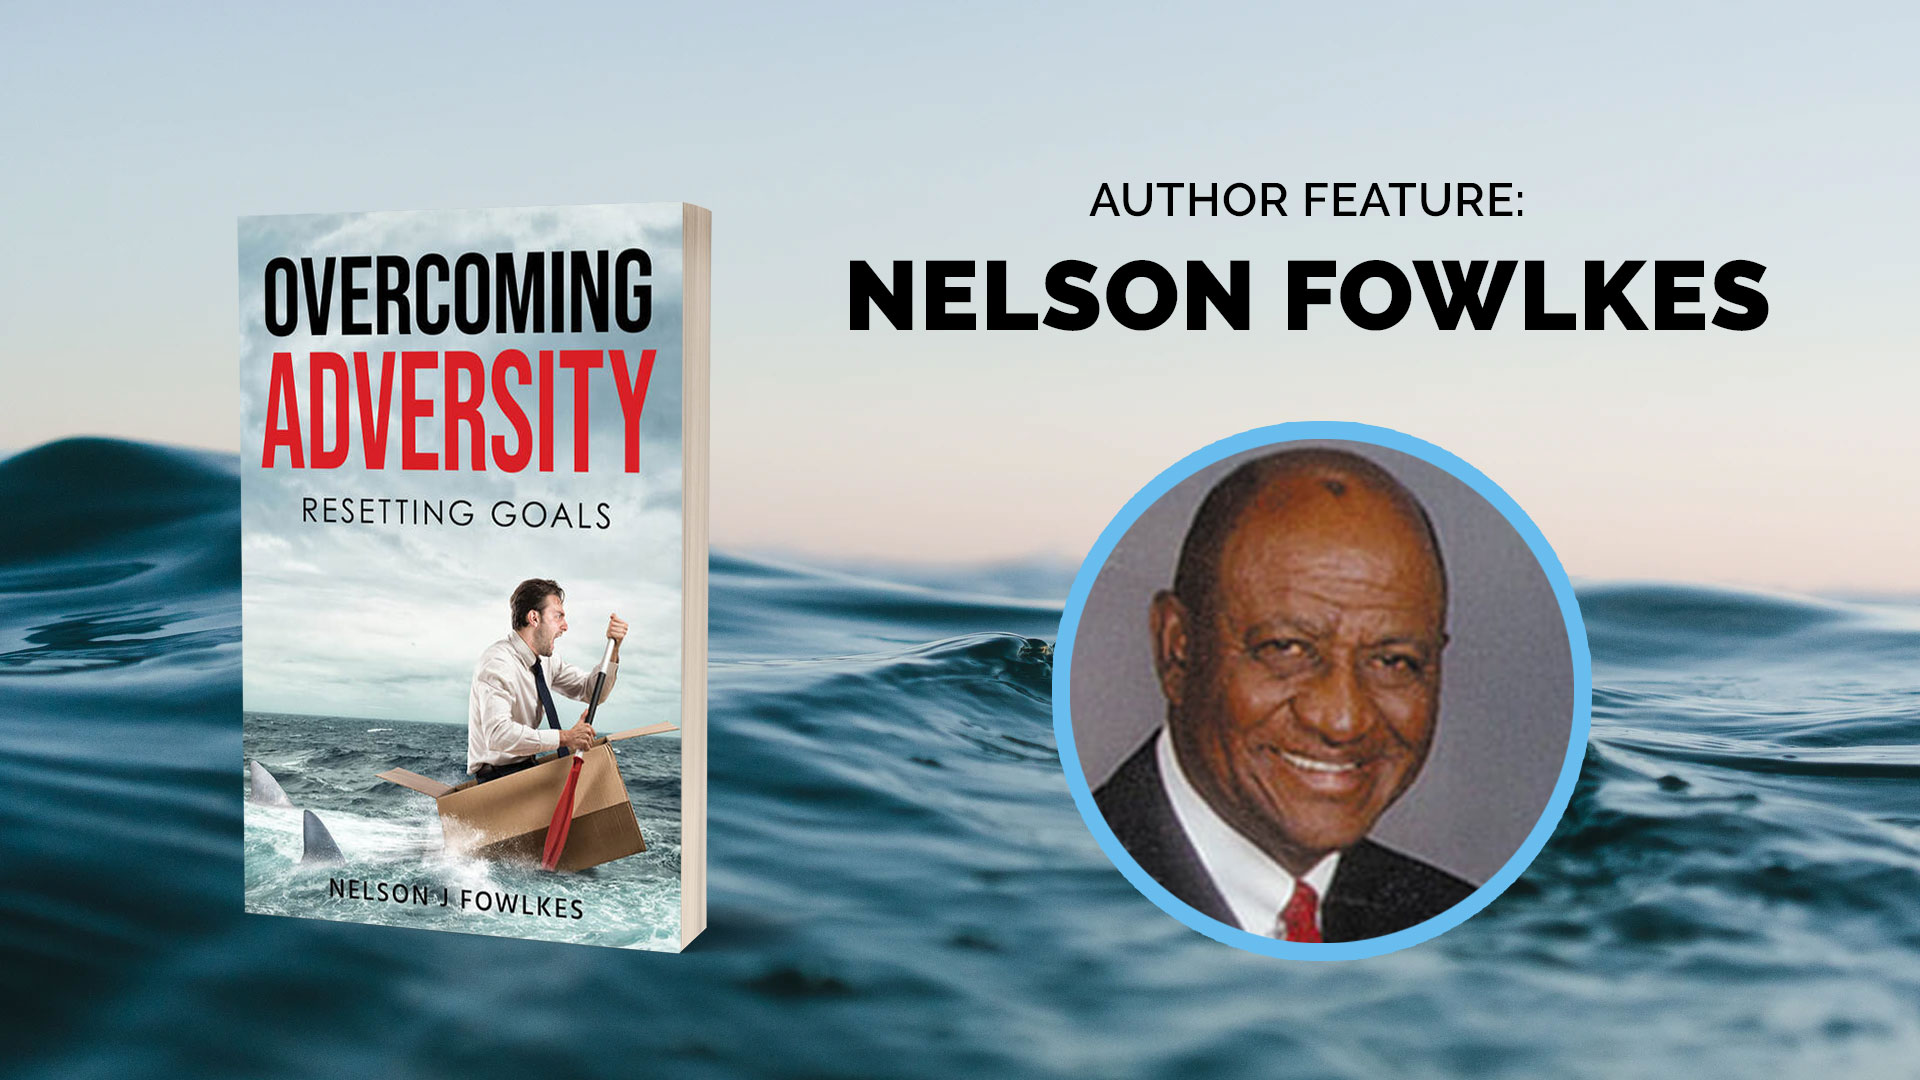 Author-Feature-Nelson-Fowlkes banner